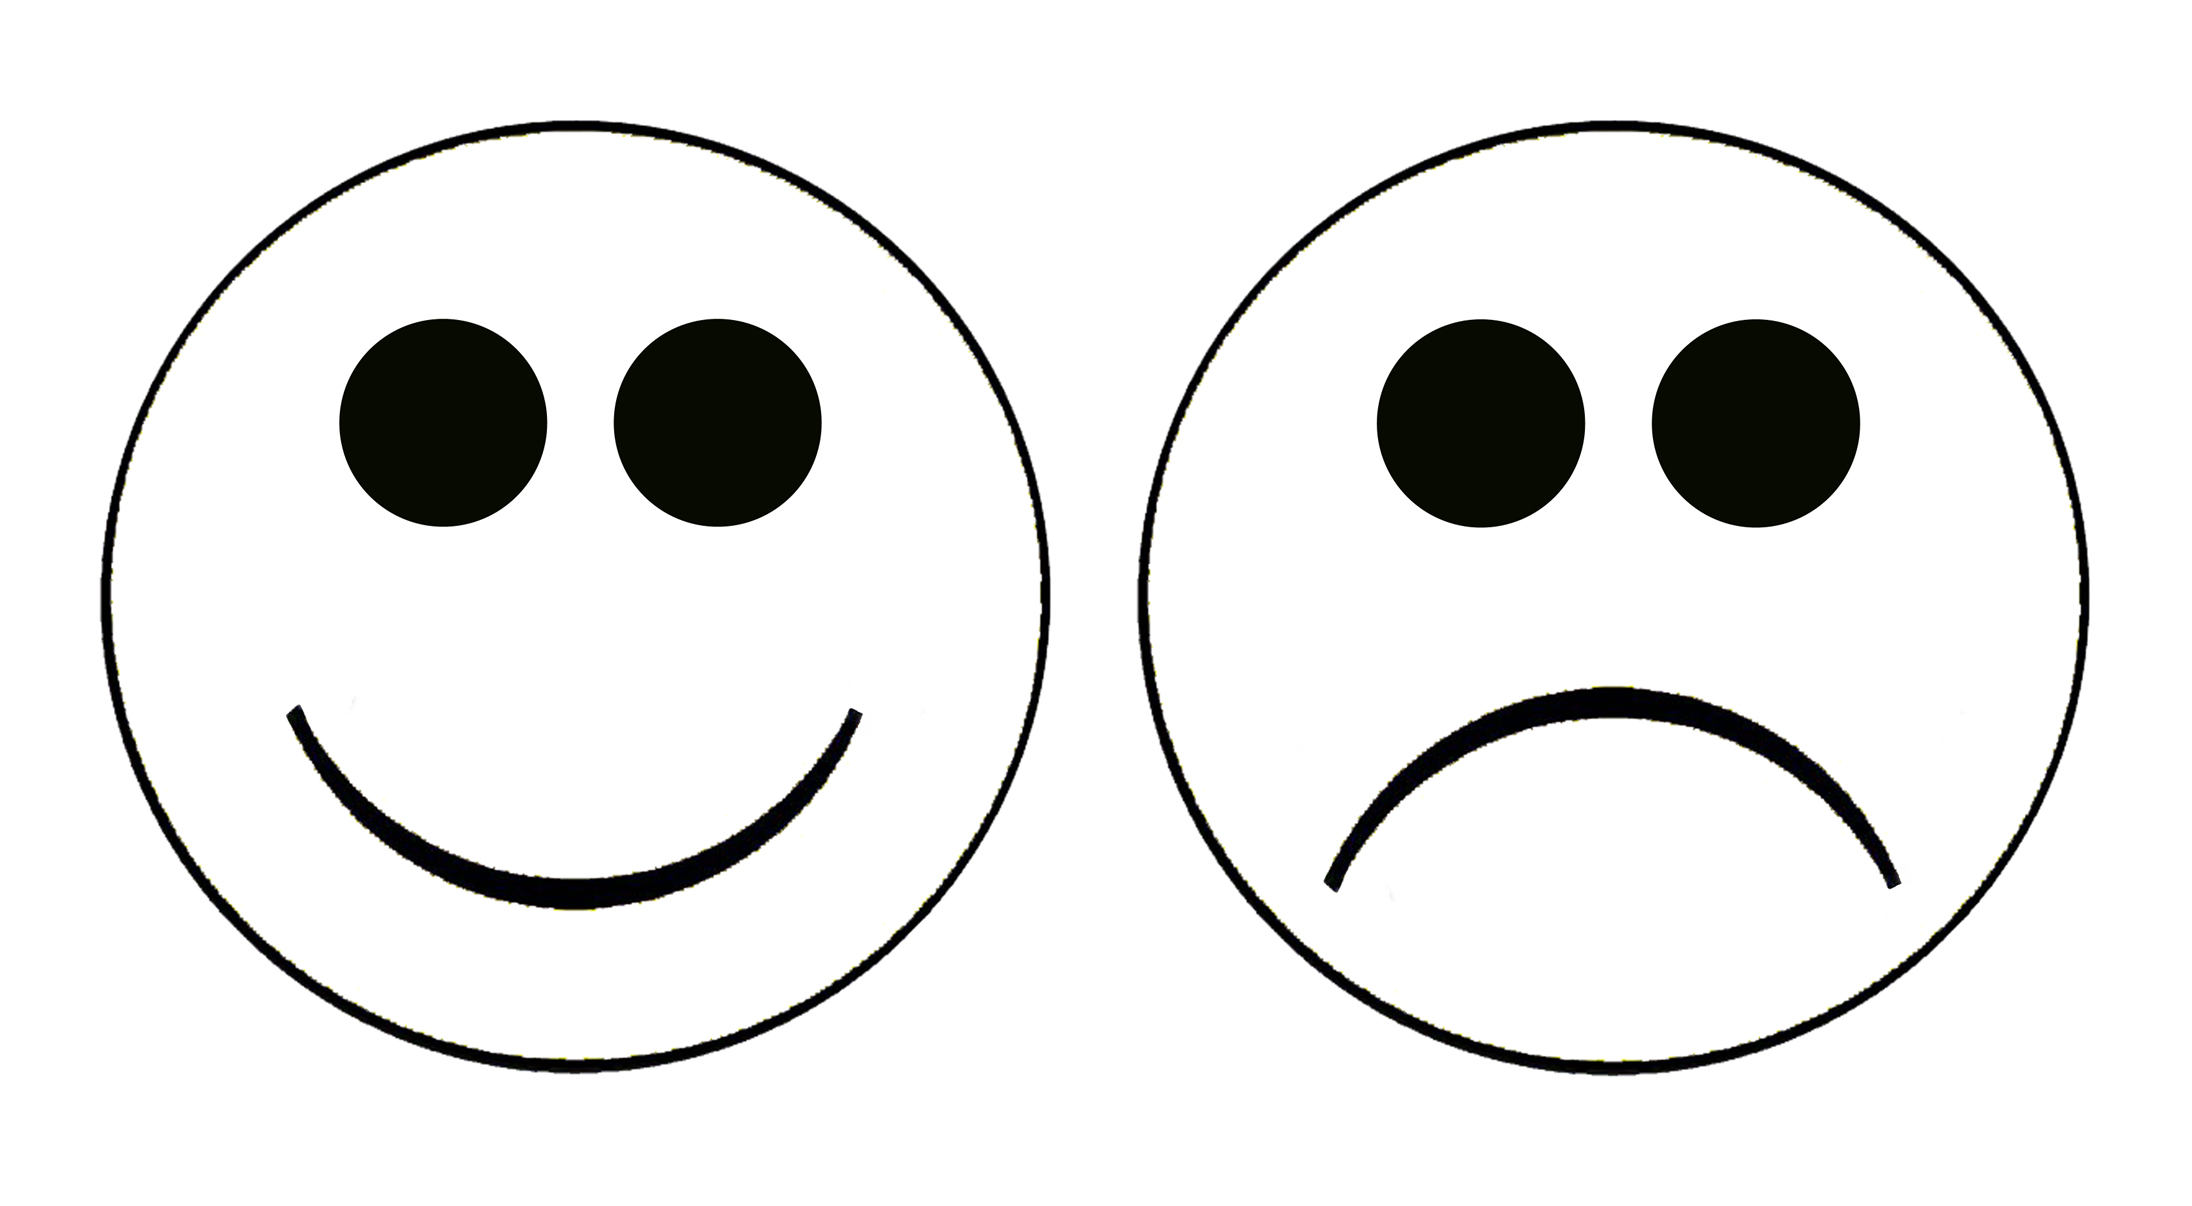 Smiley face happy smiling face clip art at vector clip art 2